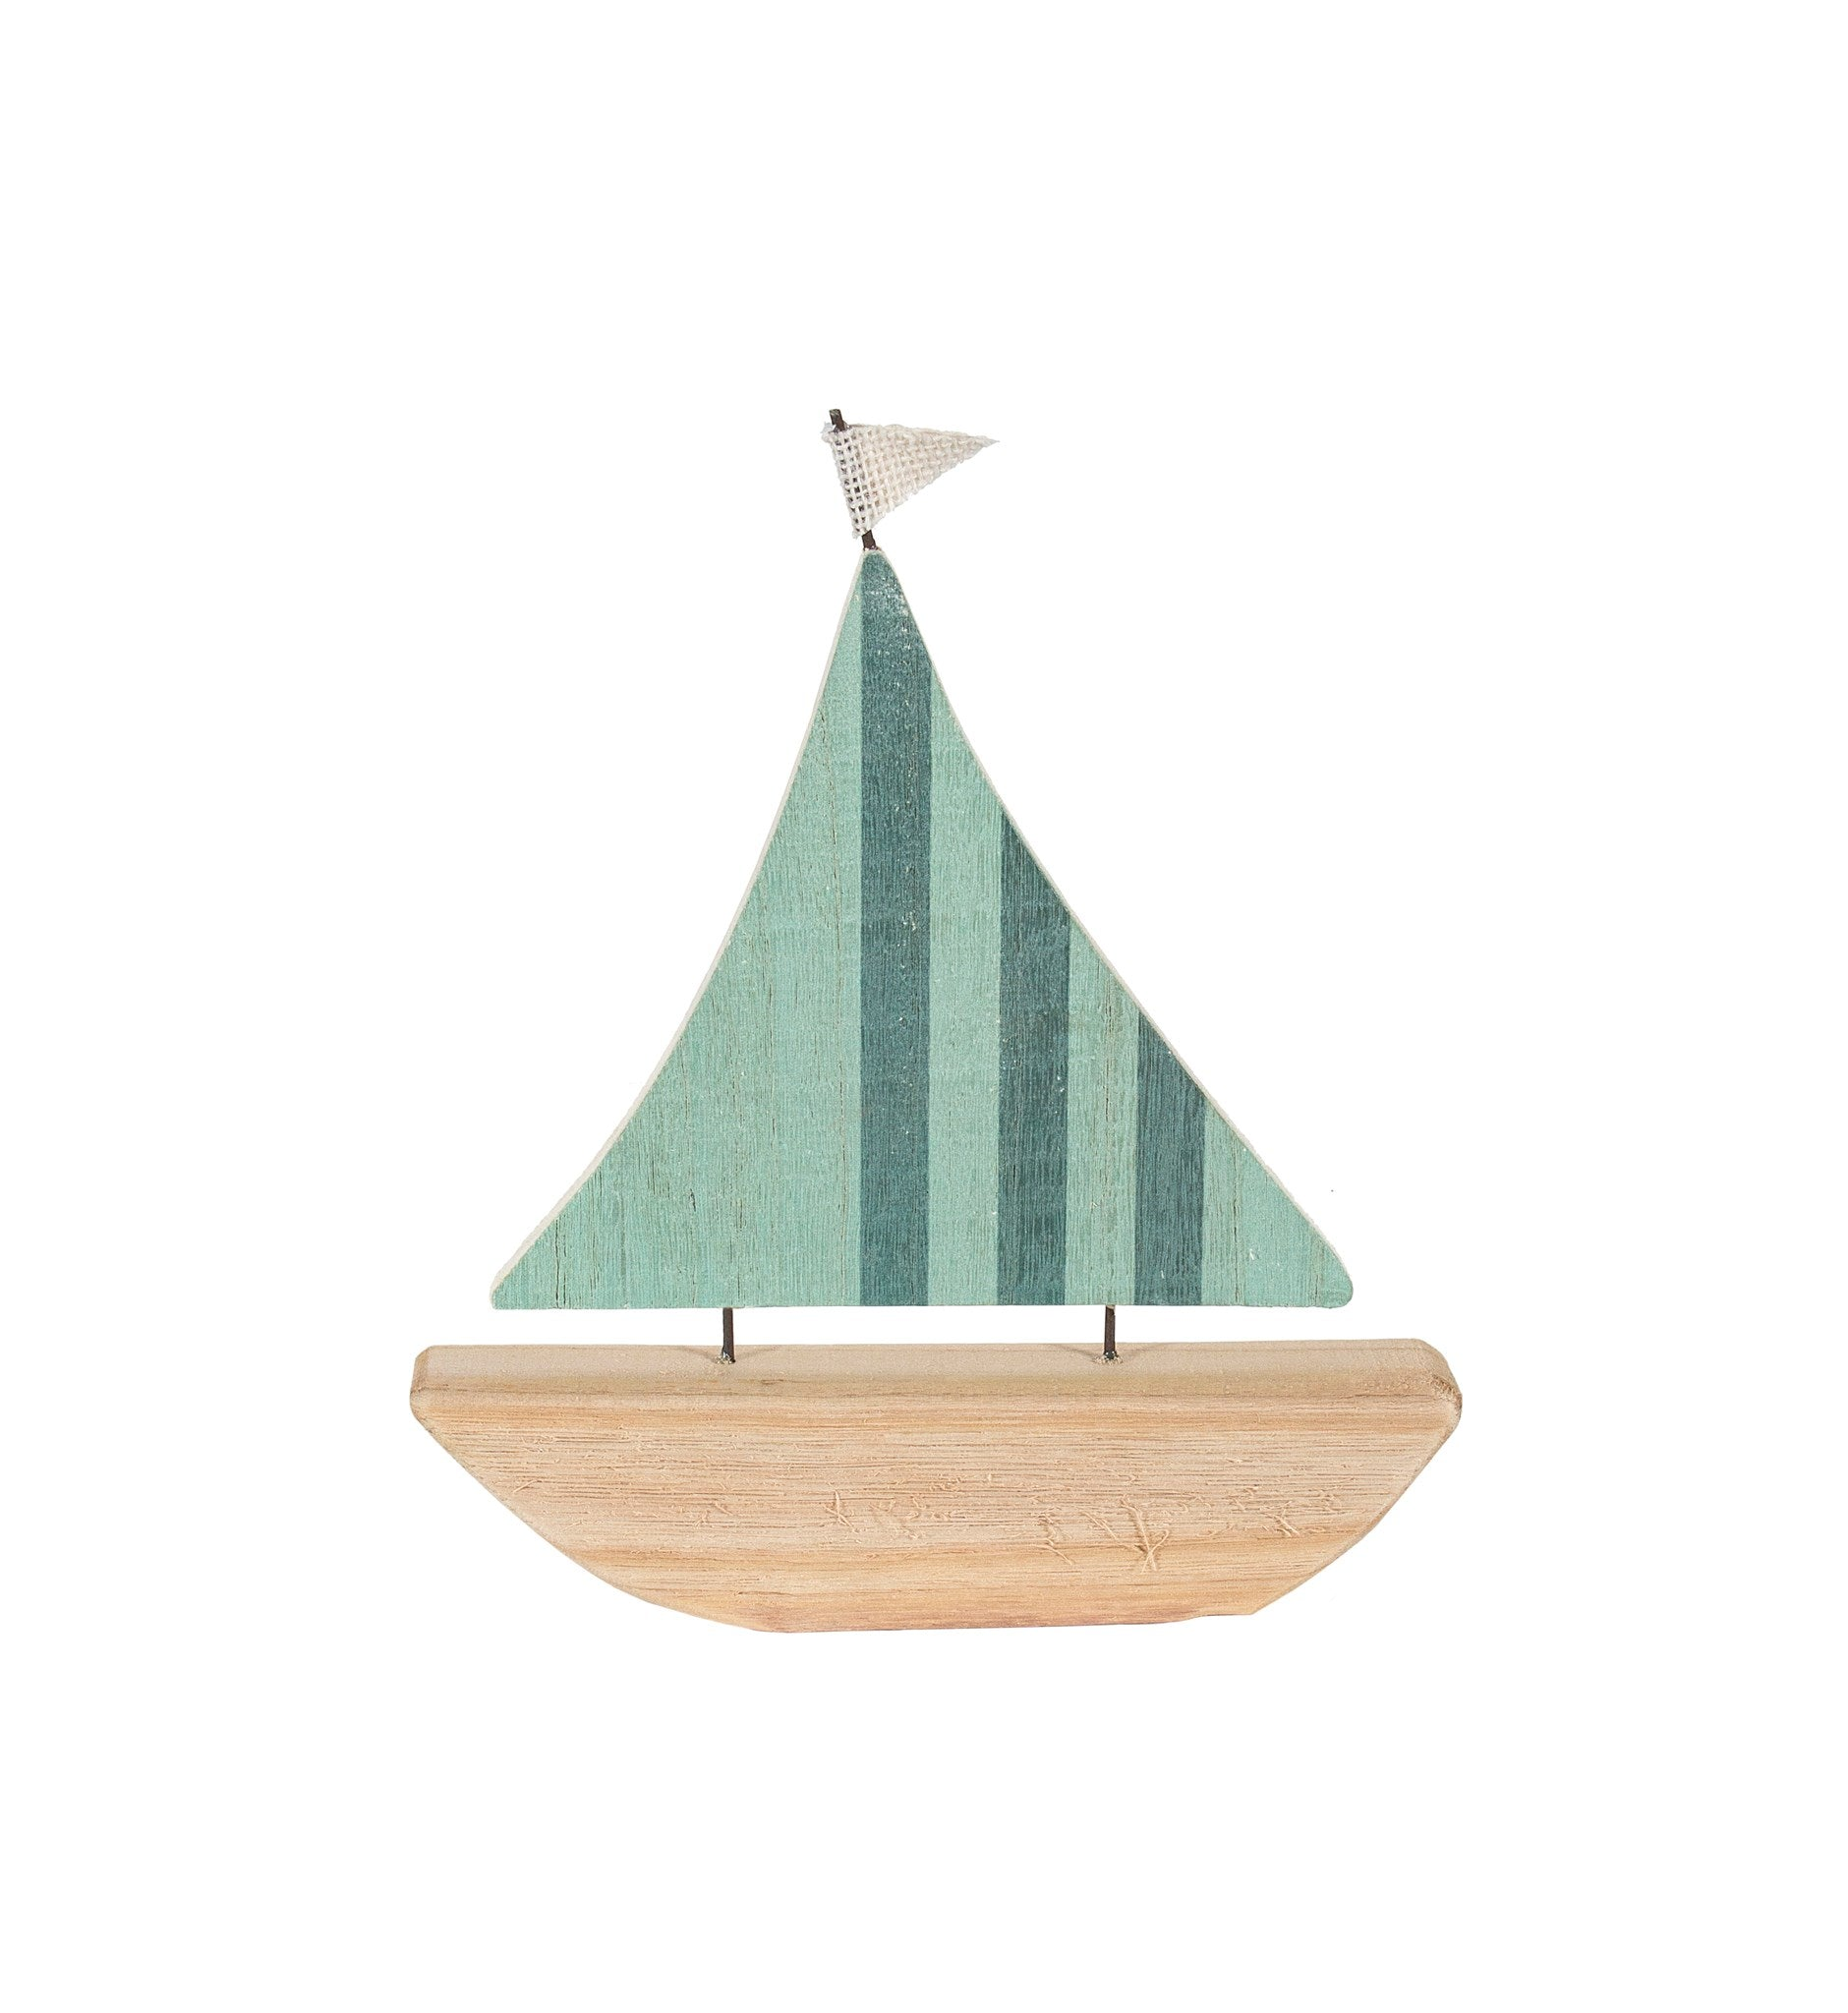 CNDYM - SMALL WOOD SAILBOAT